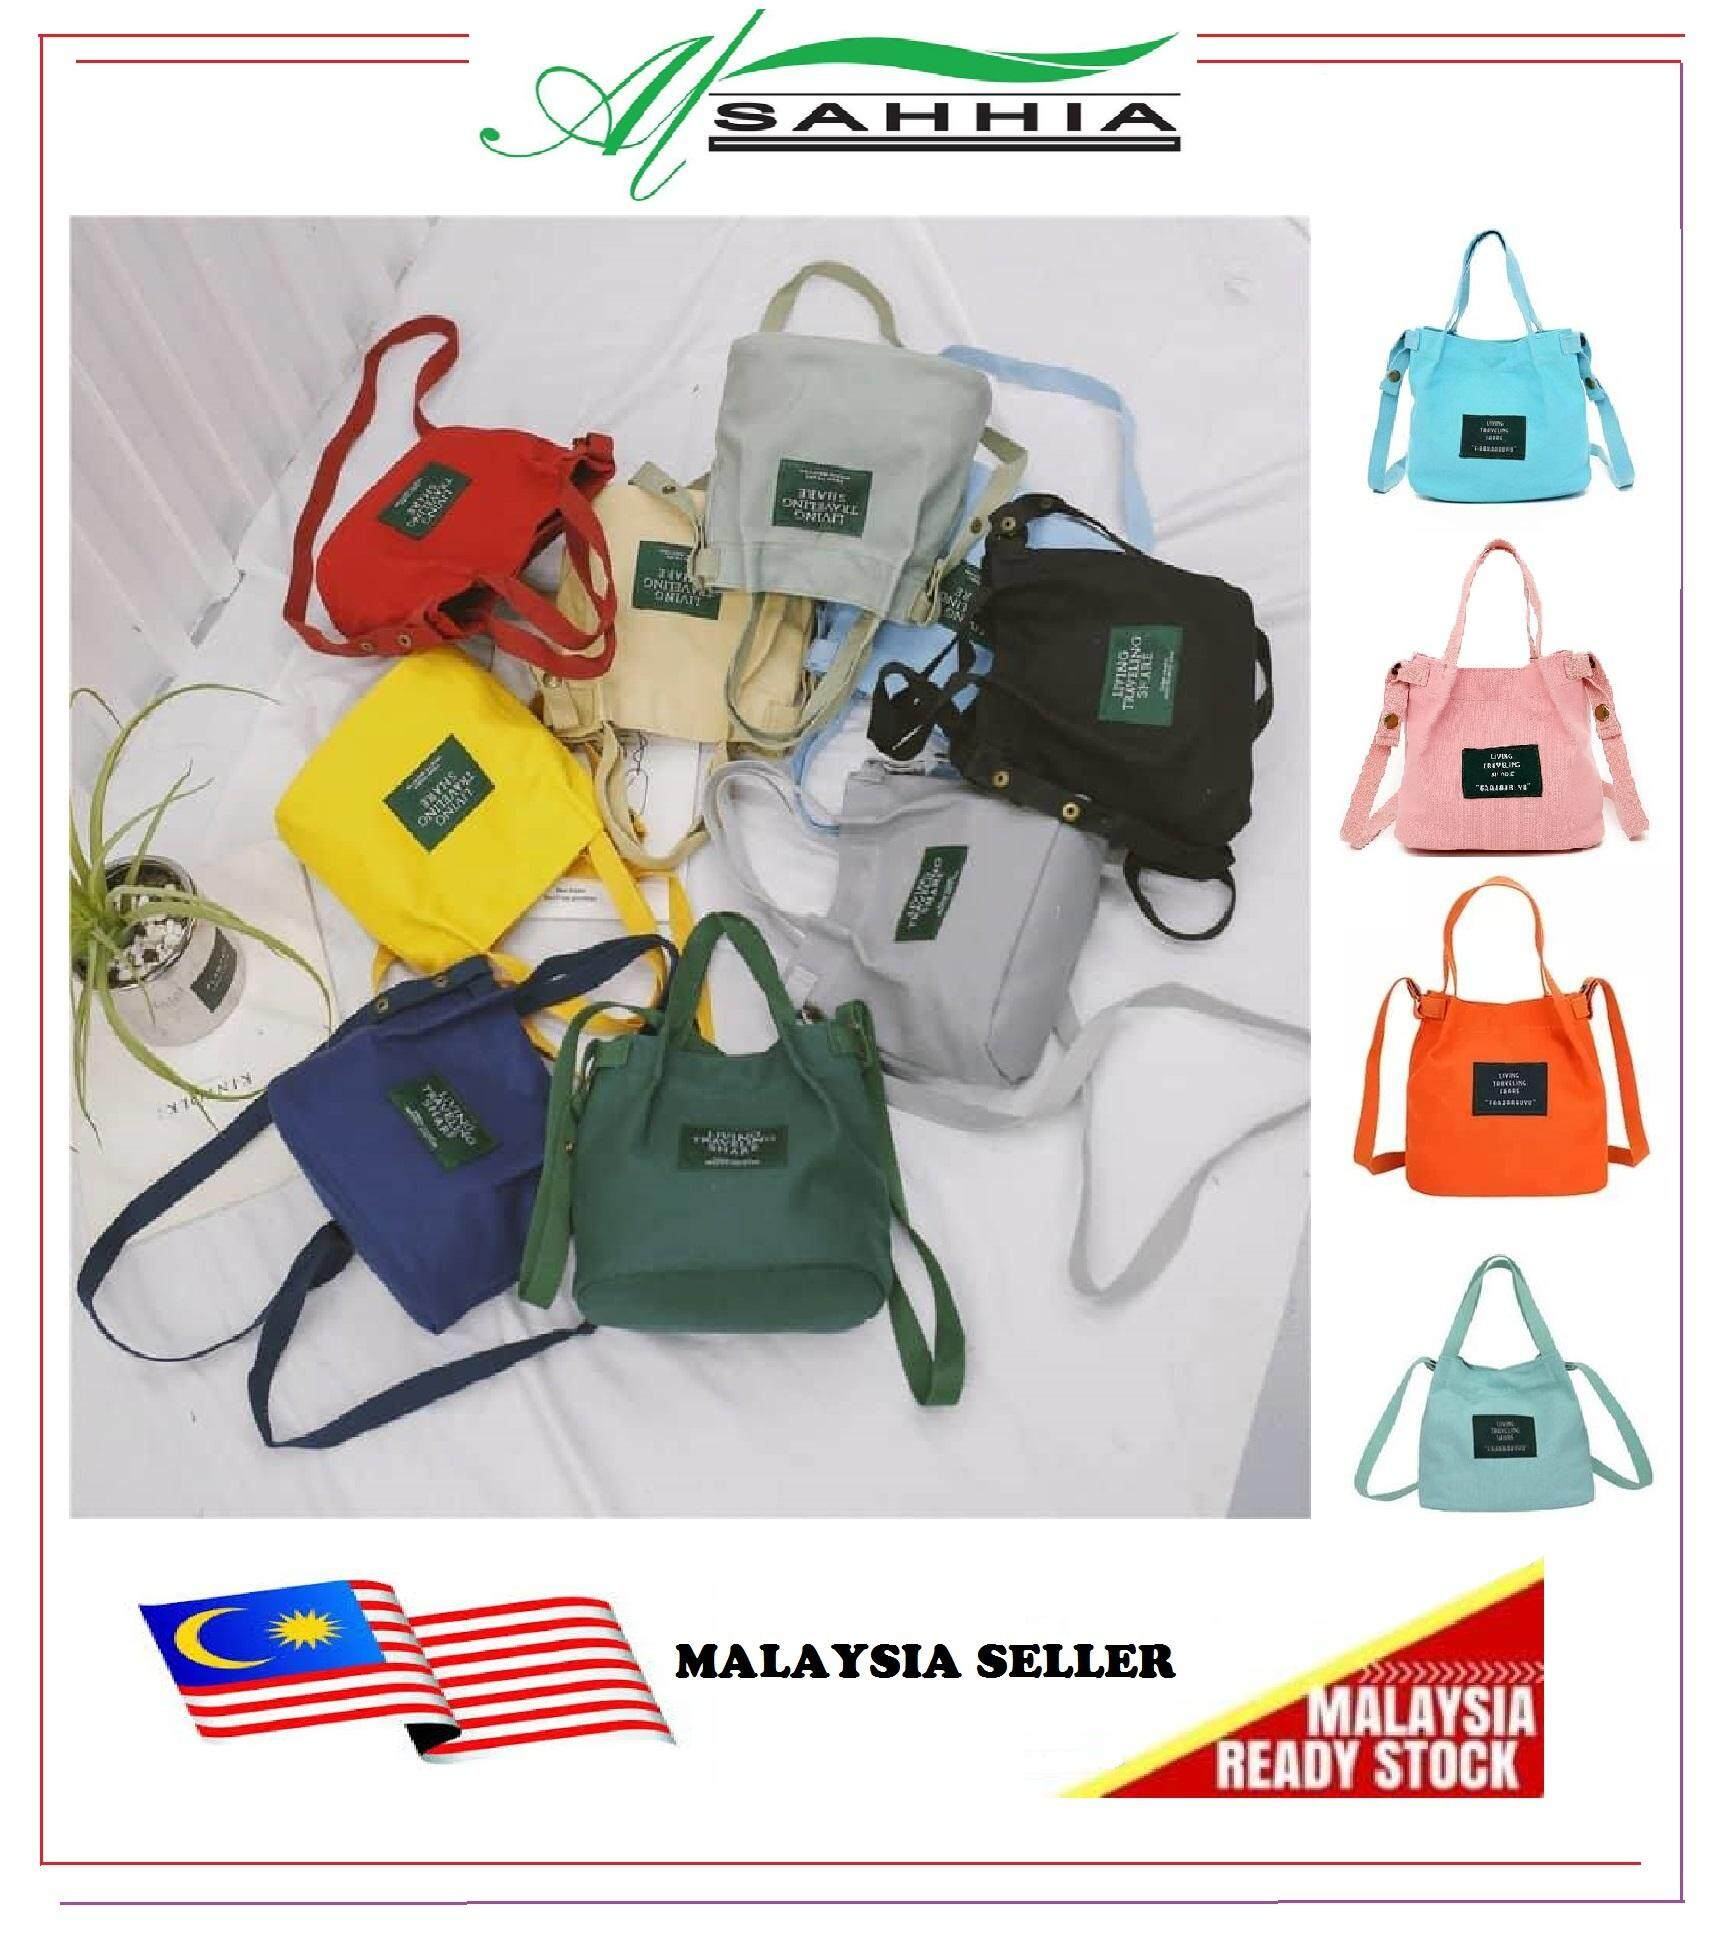 7b7b4f5a11a Latest Women s Bags Only on Lazada Malaysia!